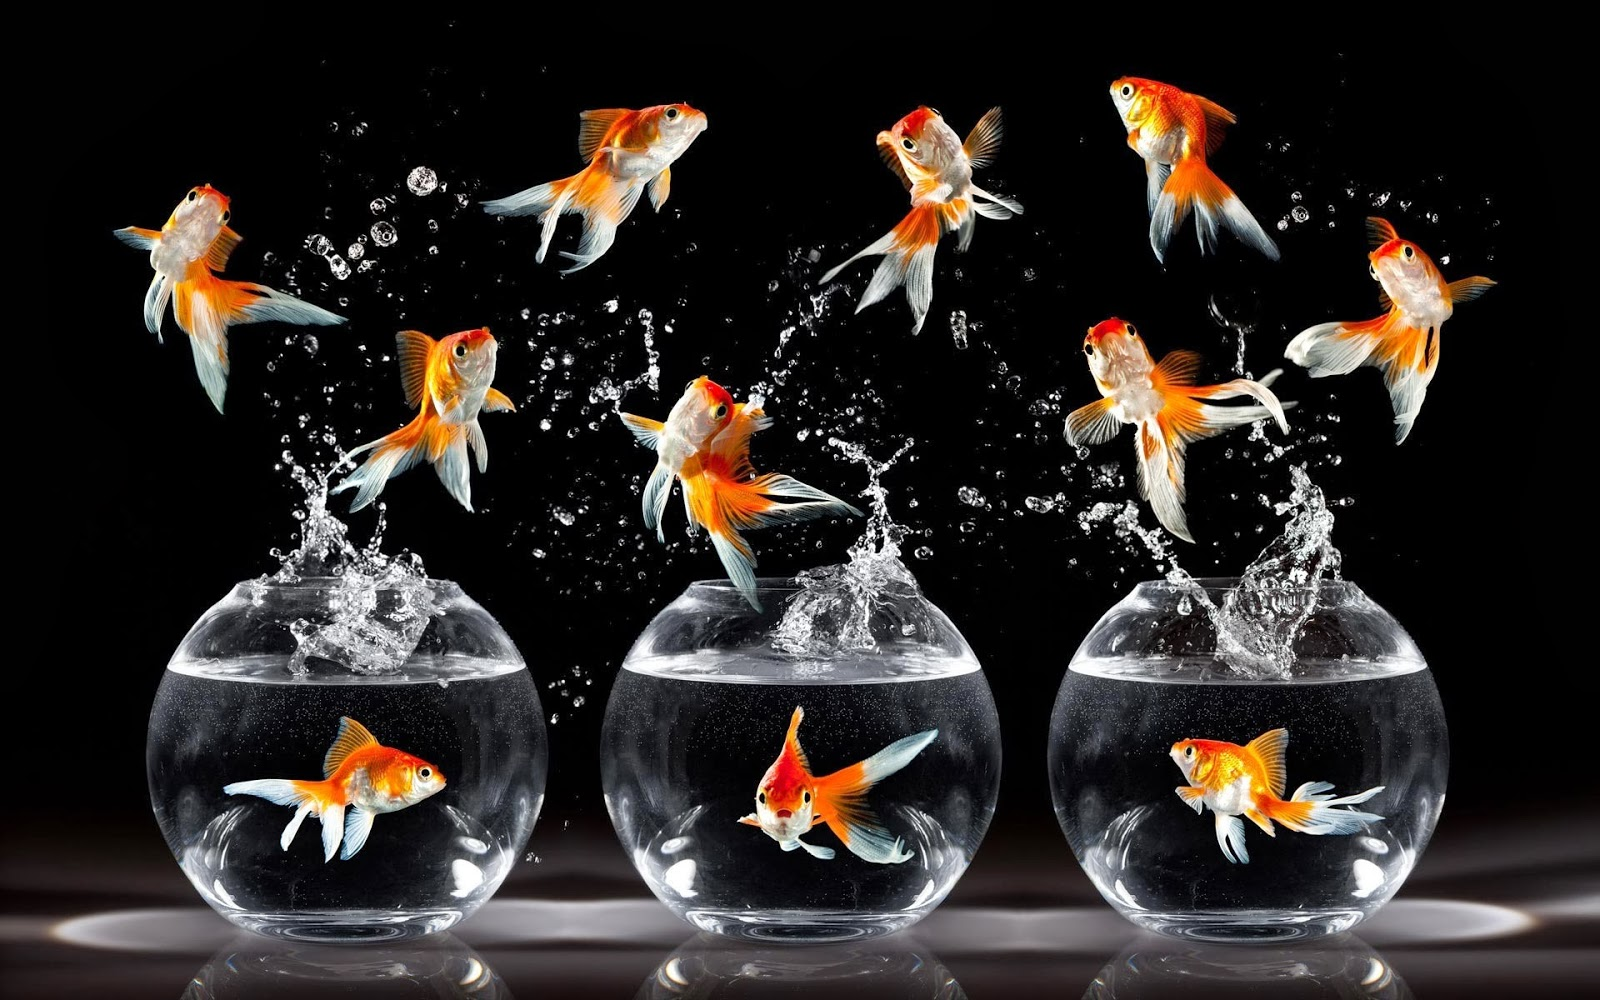 Goldfish wallpaper for walls   beautiful desktop wallpapers 2014 1600x1000